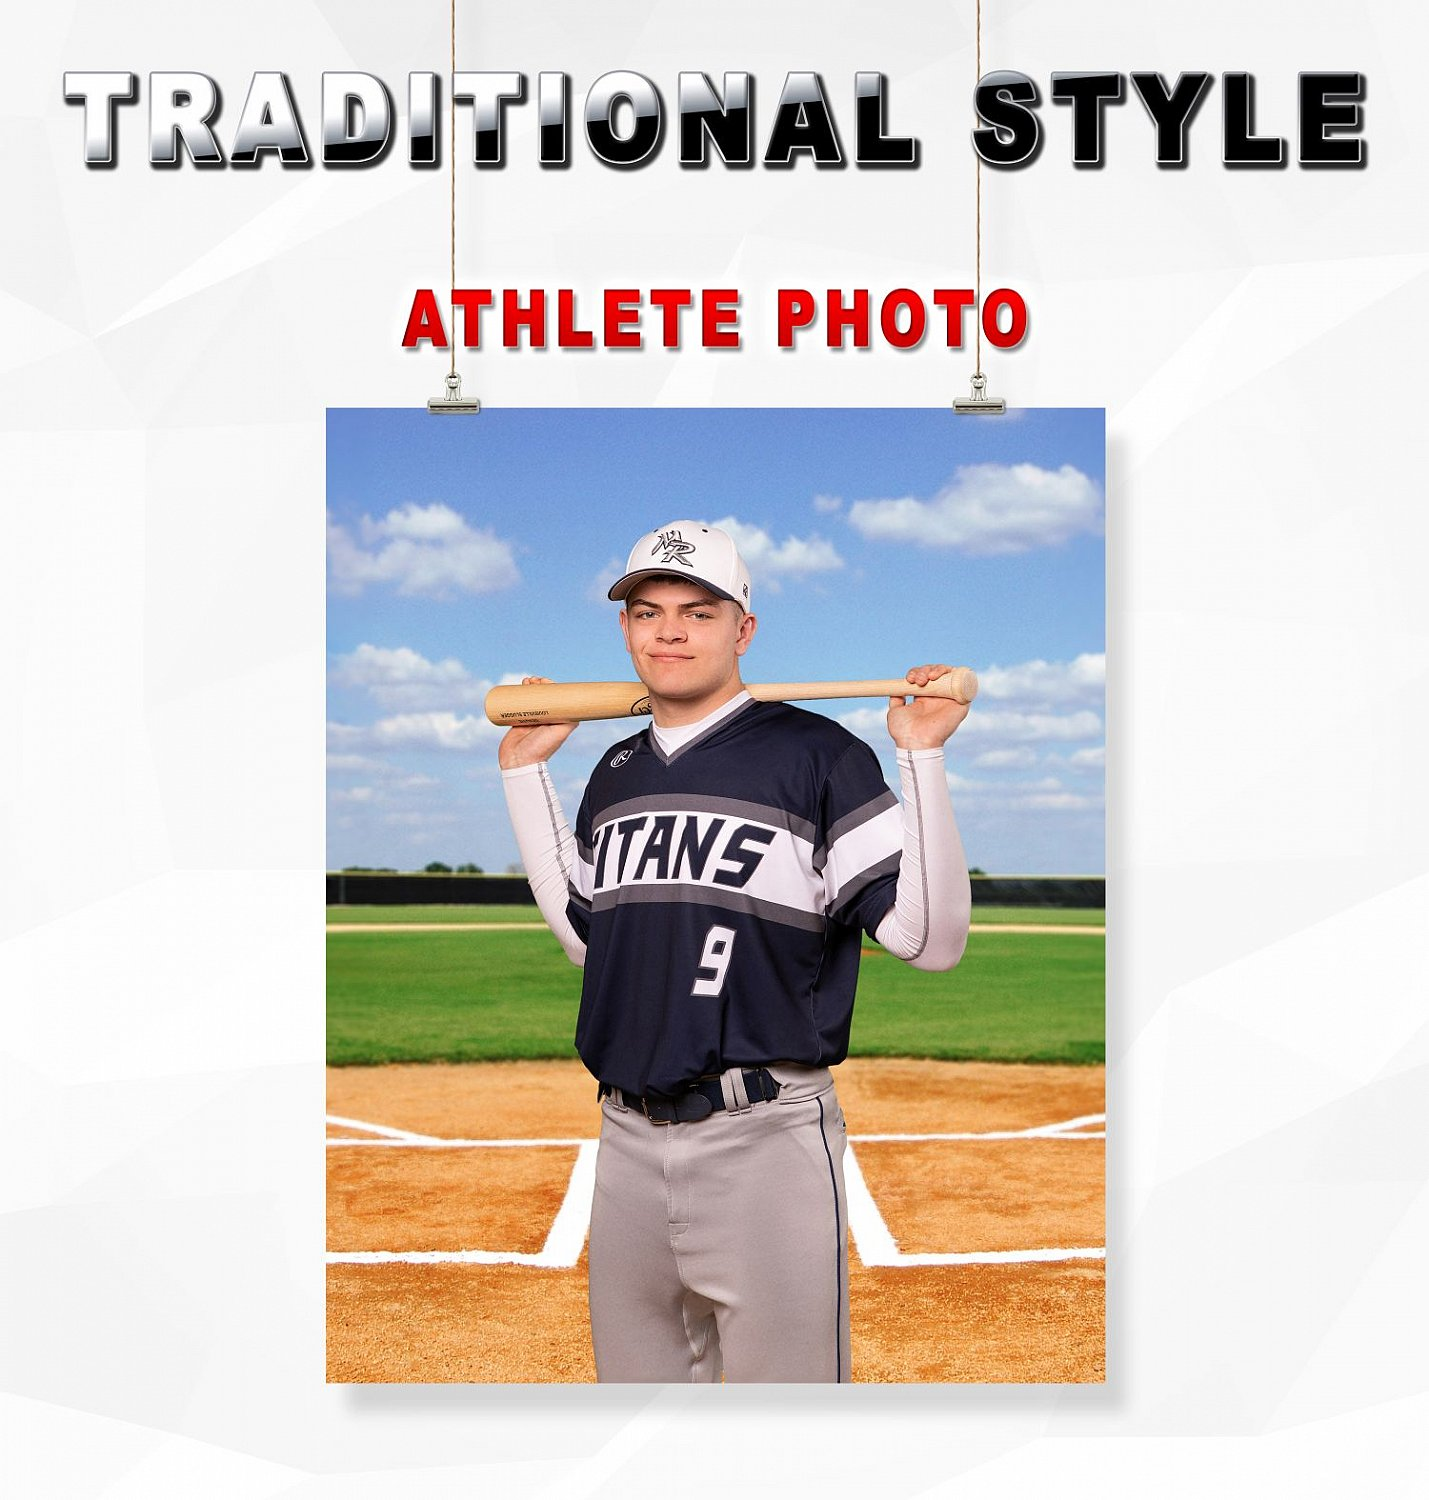 TRADITIONAL STYLE ATHLETE PHOTO